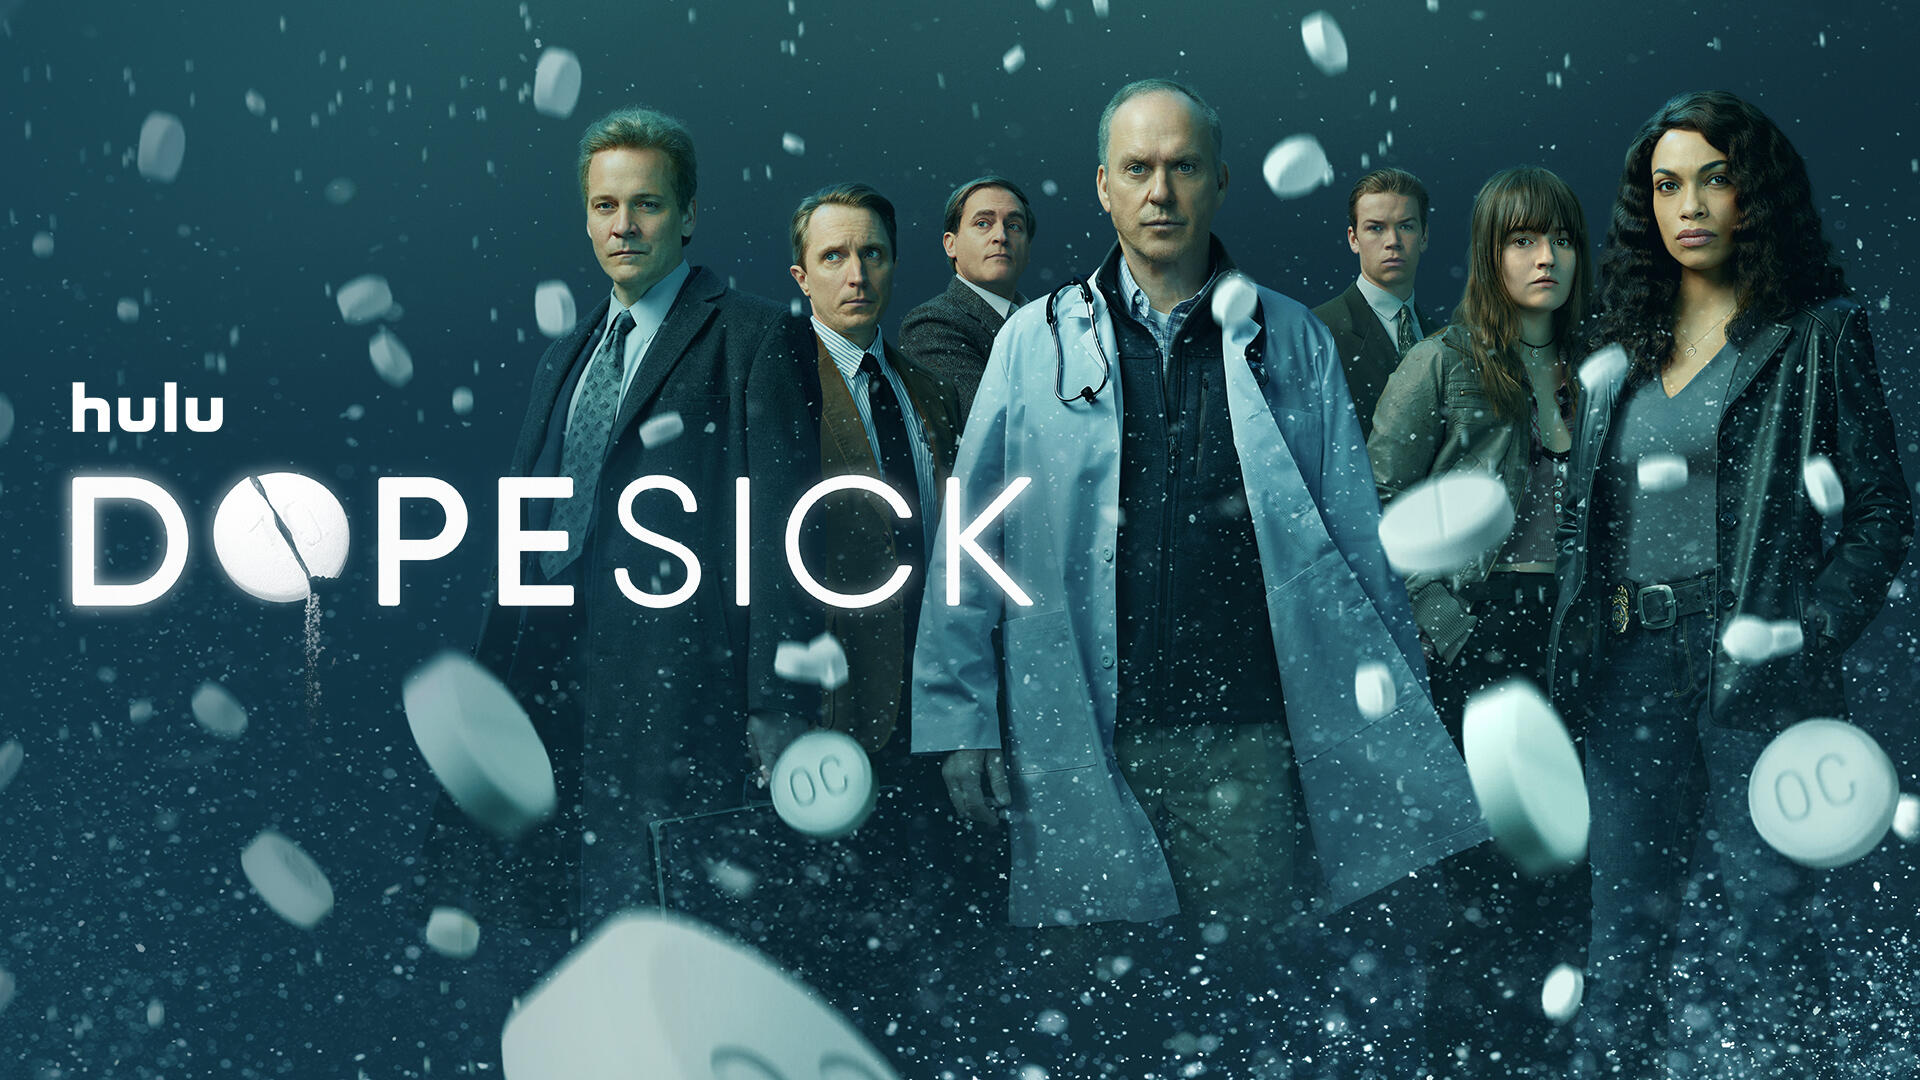 """Dopesick -- From Executive Producer Danny Strong and starring and executive produced by Michael Keaton, """"Dopesick"""" examines how one company triggered the worst drug epidemic in American history. The series takes viewers to the epicenter of America's struggle with opioid addiction, from the boardrooms of Big Pharma, to a distressed Virginia mining community, to the hallways of the DEA. Defying all the odds, heroes will emerge in an intense and thrilling ride to take down the craven corporate forces behind this national crisis and their allies. The limited series is inspired by the New York Times bestselling book by Beth Macy. Dr. Samuel Finnix (Michael Keaton), Rick Mountcastle (Peter Sarsgaard), Richard Sackler (Michael Stuhlberg), Billy (Will Poulter), Randy Ramseyer (John Hoogenakker), Betsy (Kaitlyn Dever) and Bridget Meyer (Rosario Dawson), shown. (Courtesy of Hulu)"""